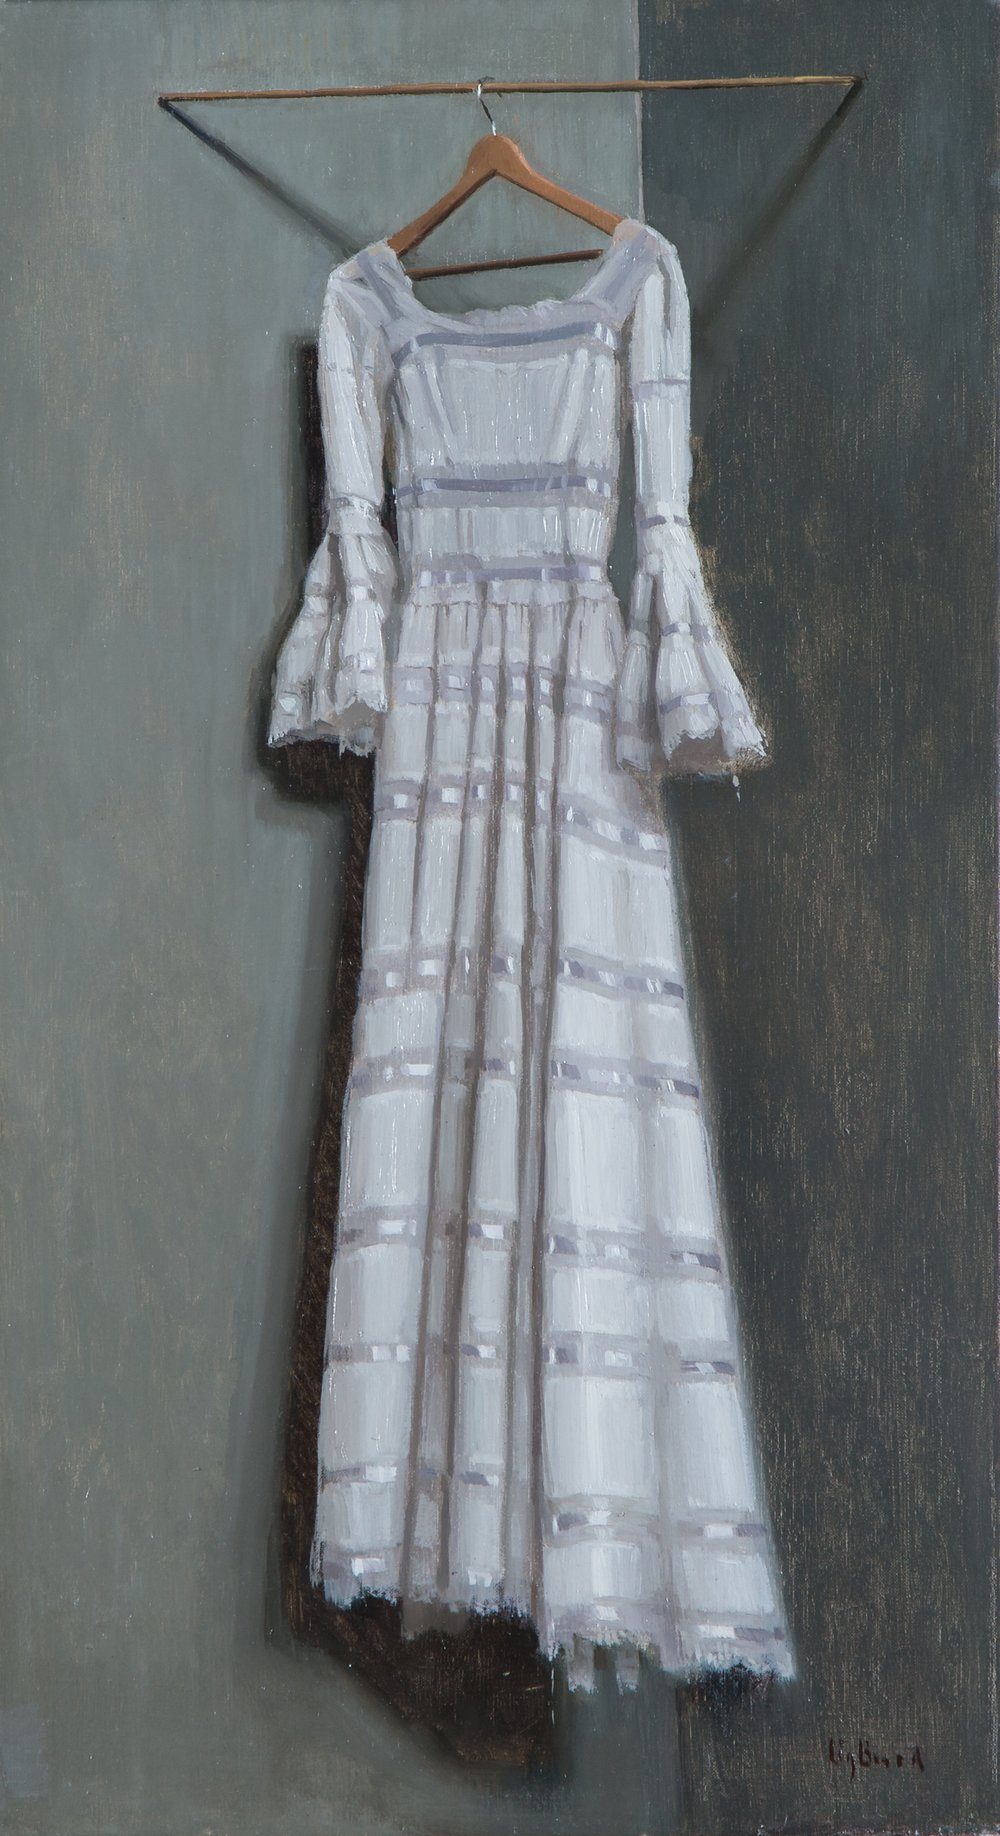 White Dress Hanging  11x20  'private collection'